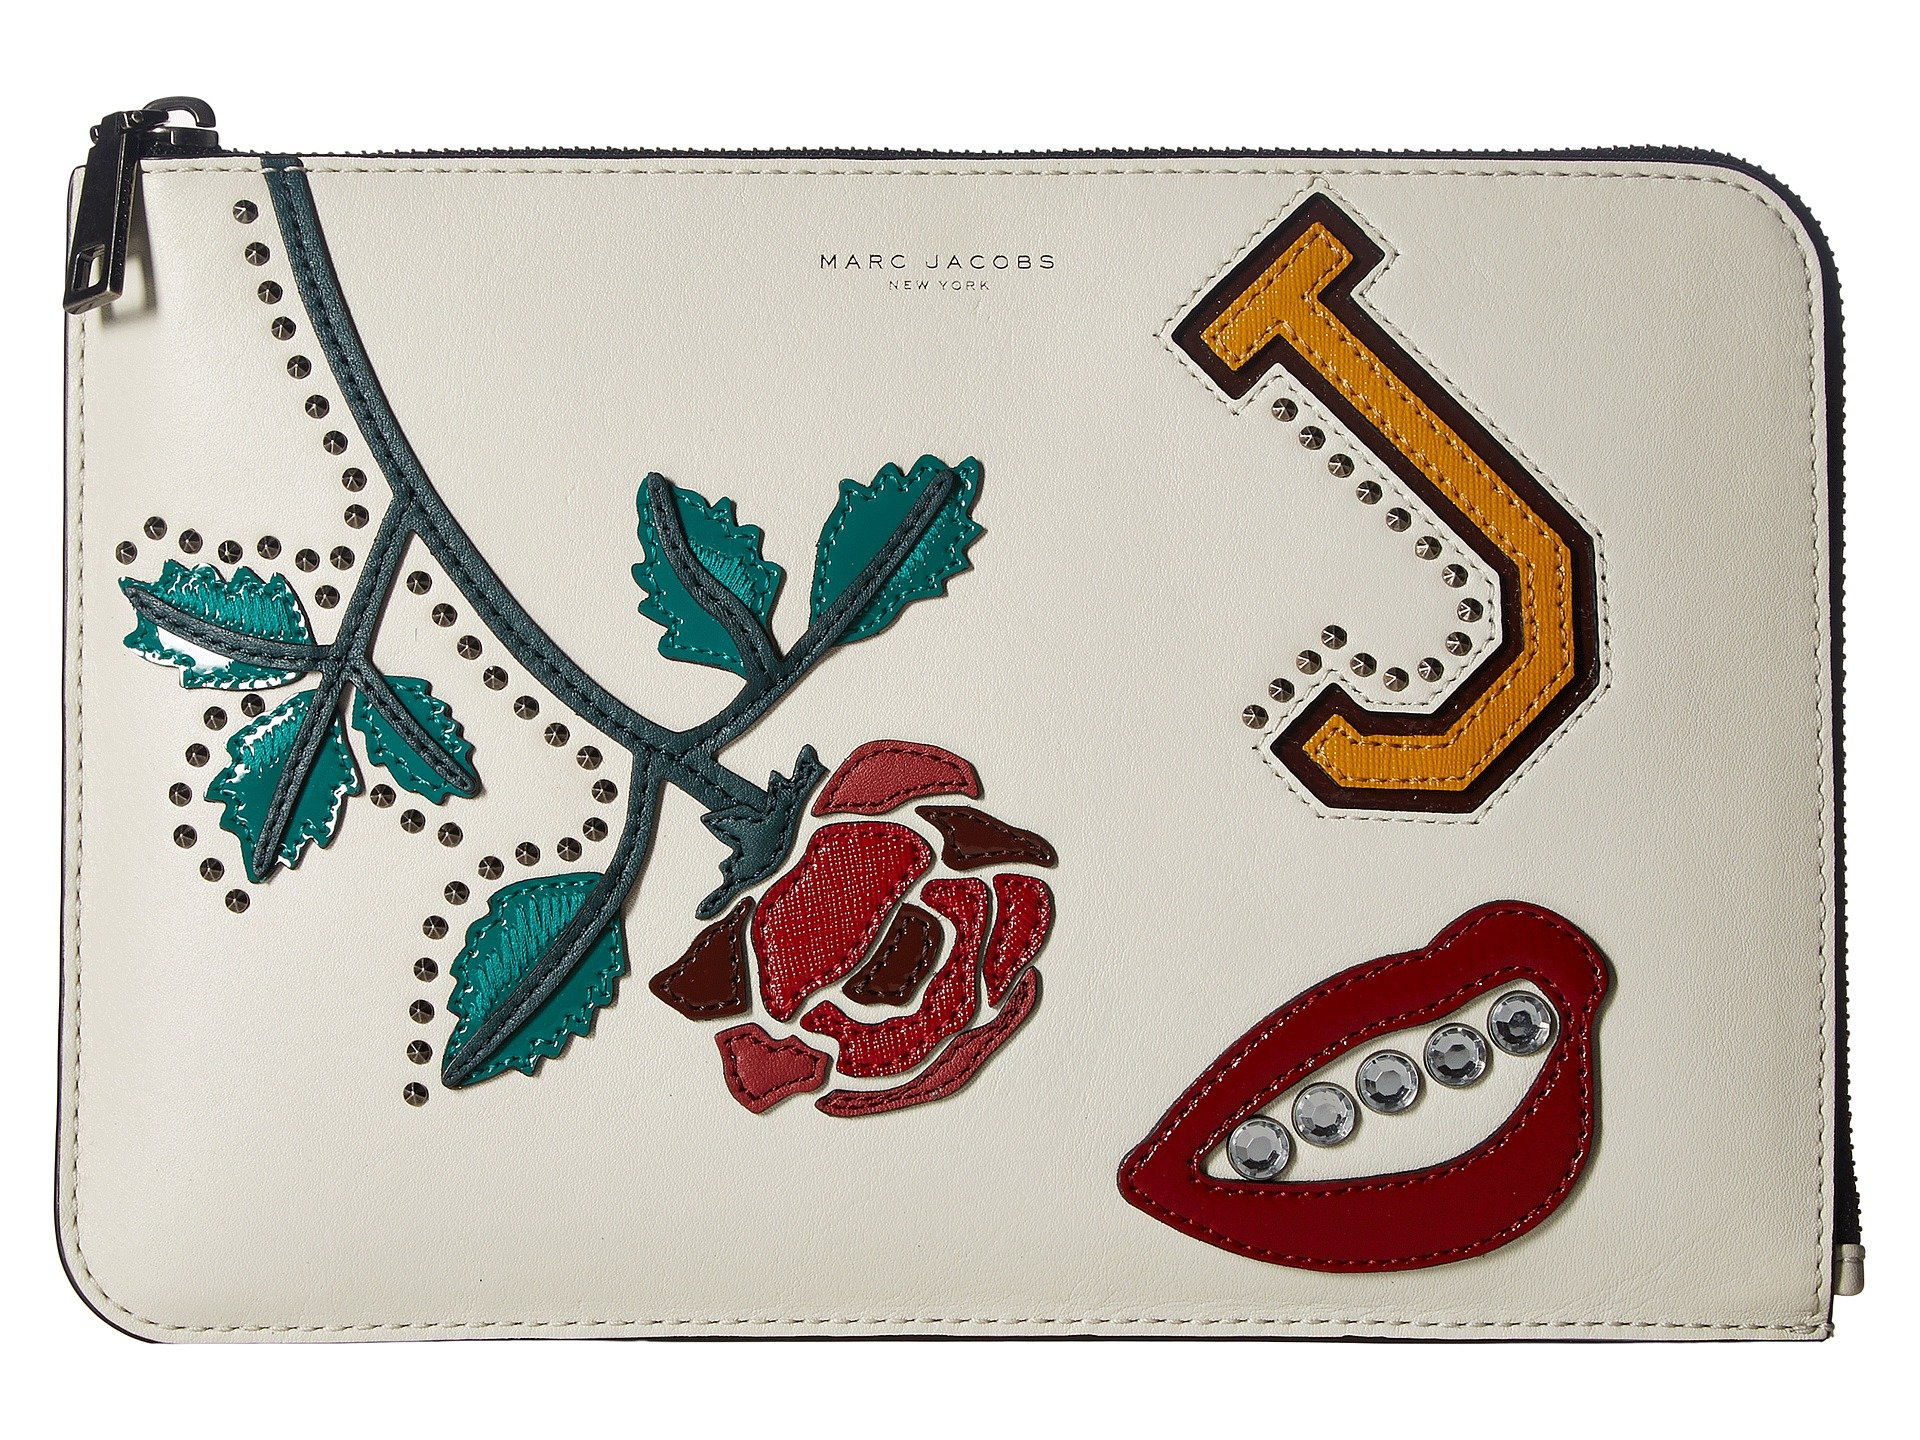 Funda para Portatil Marc Jacobs MJ Collage Tablet Case  + Marc Jacobs en VeoyCompro.net